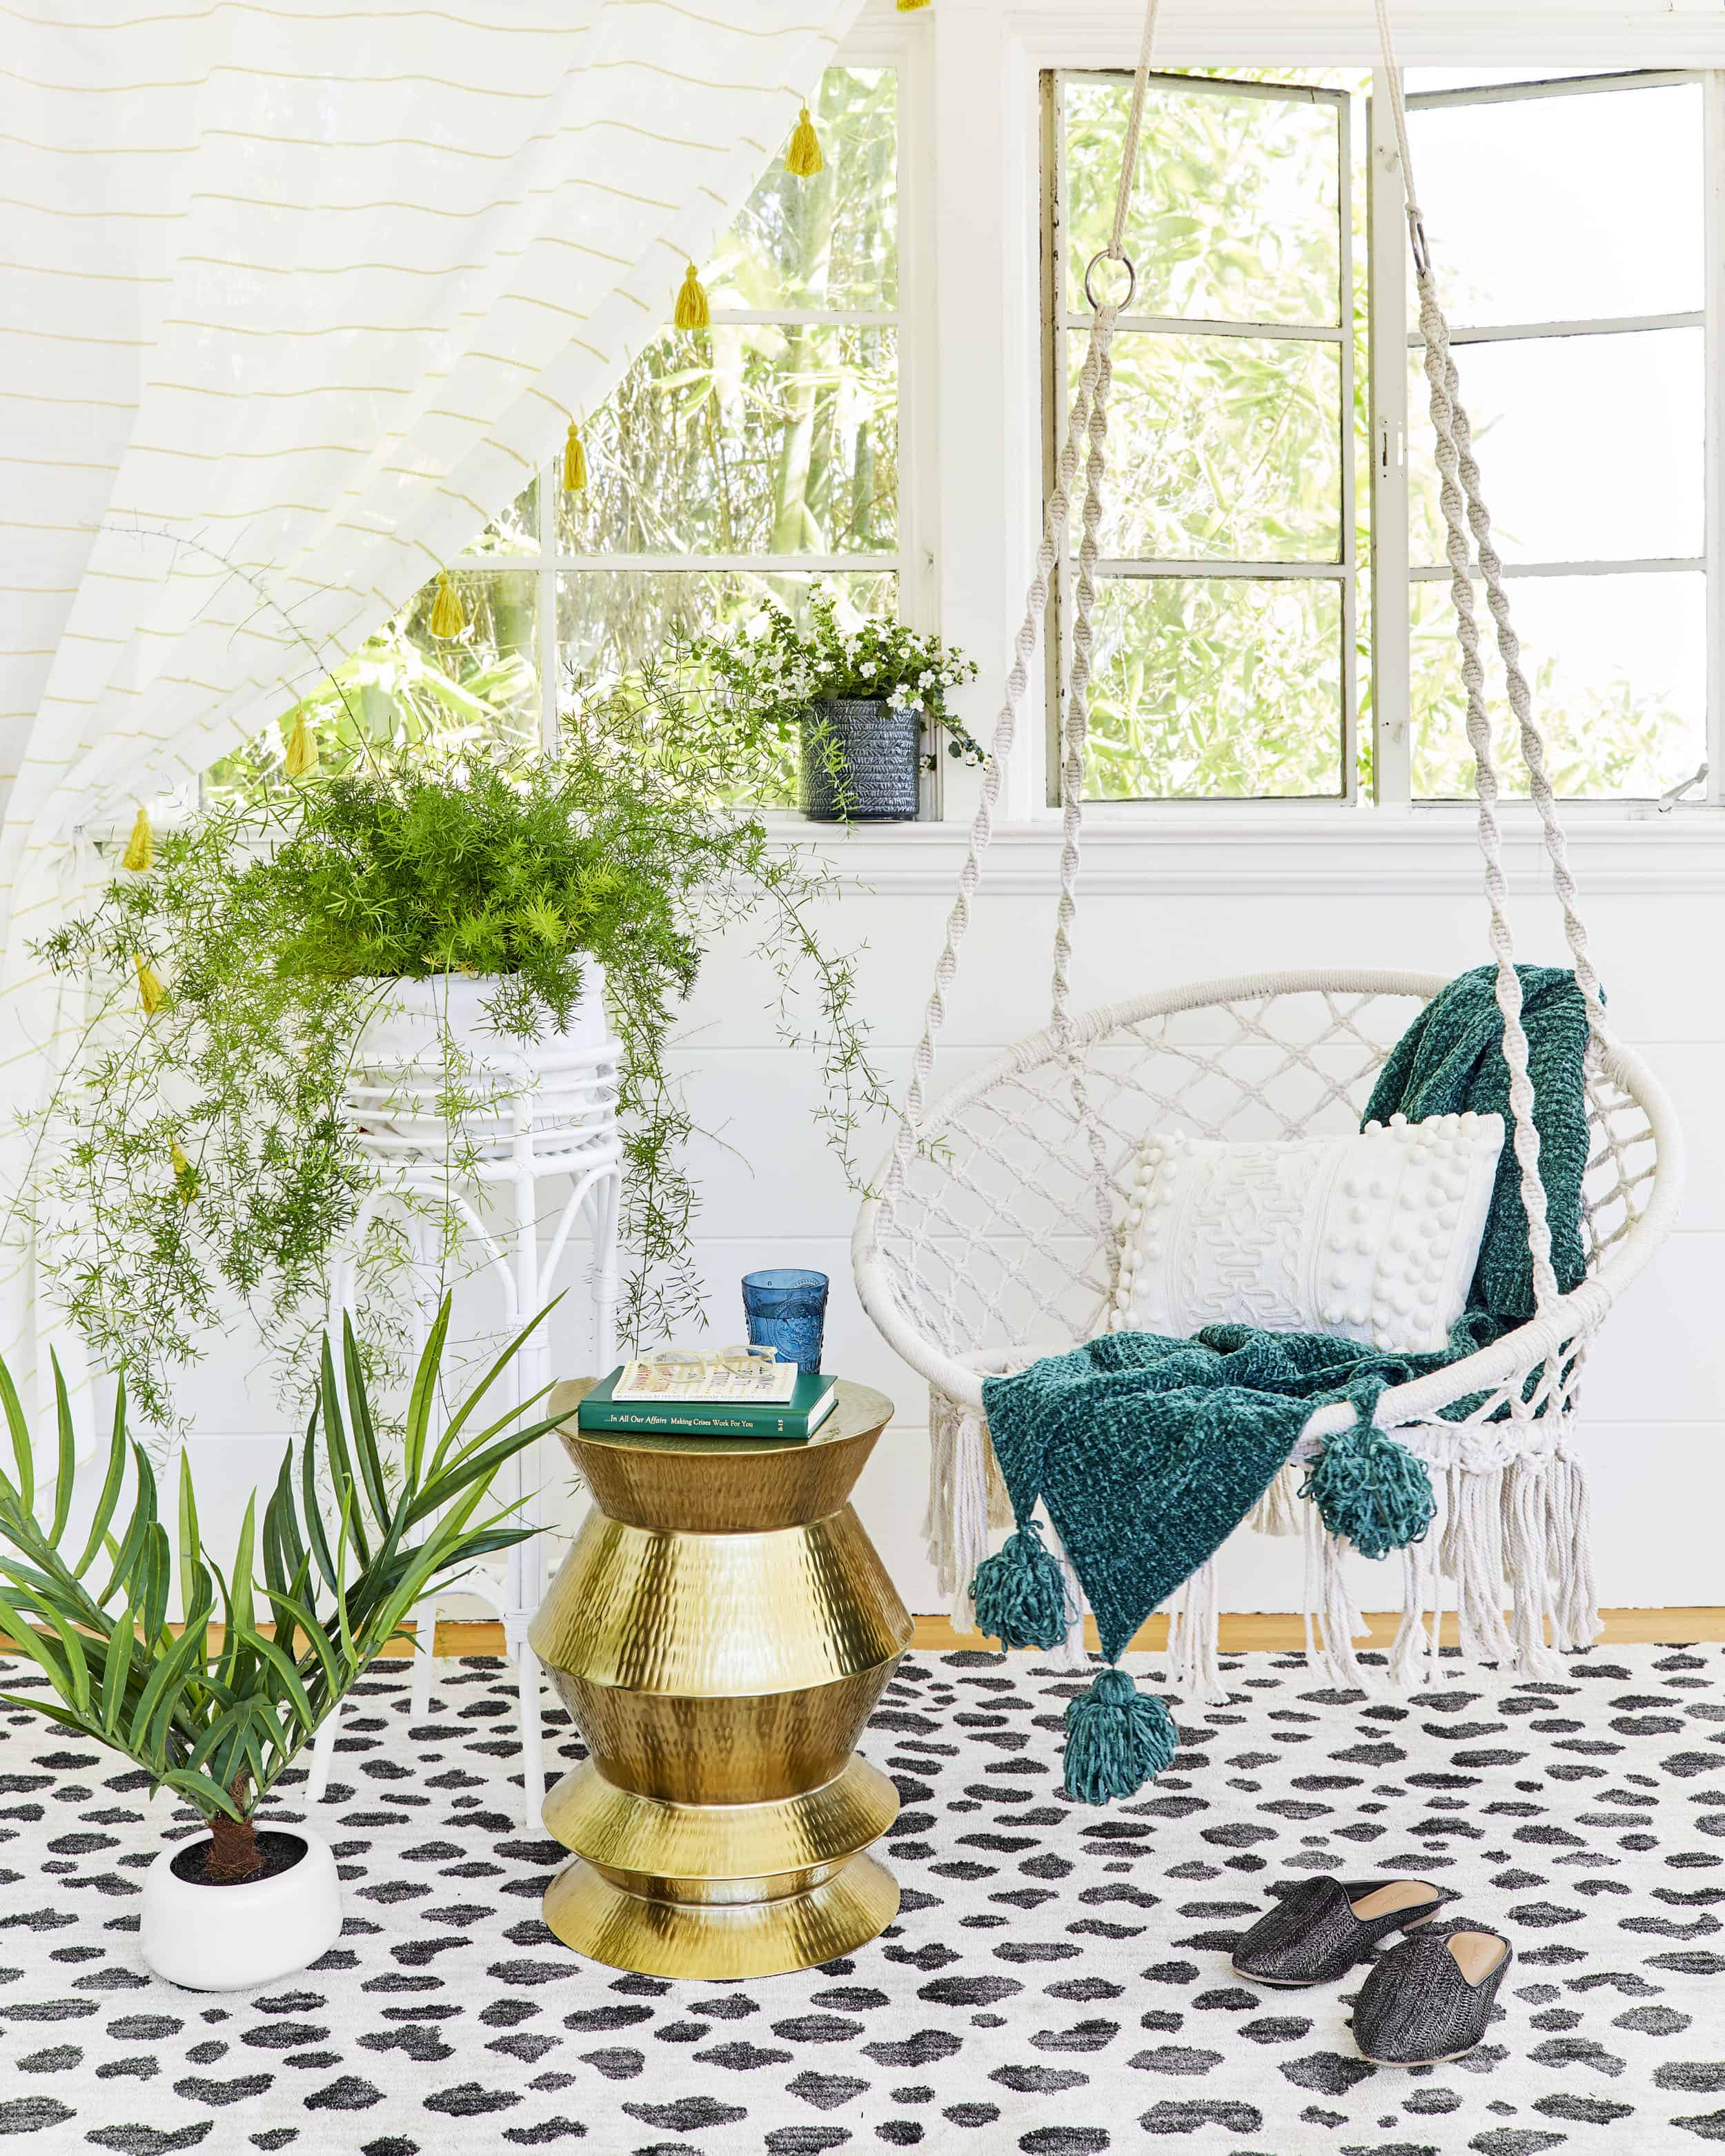 Target Opalhouse Spring 2019 Emily Henderson Lores14